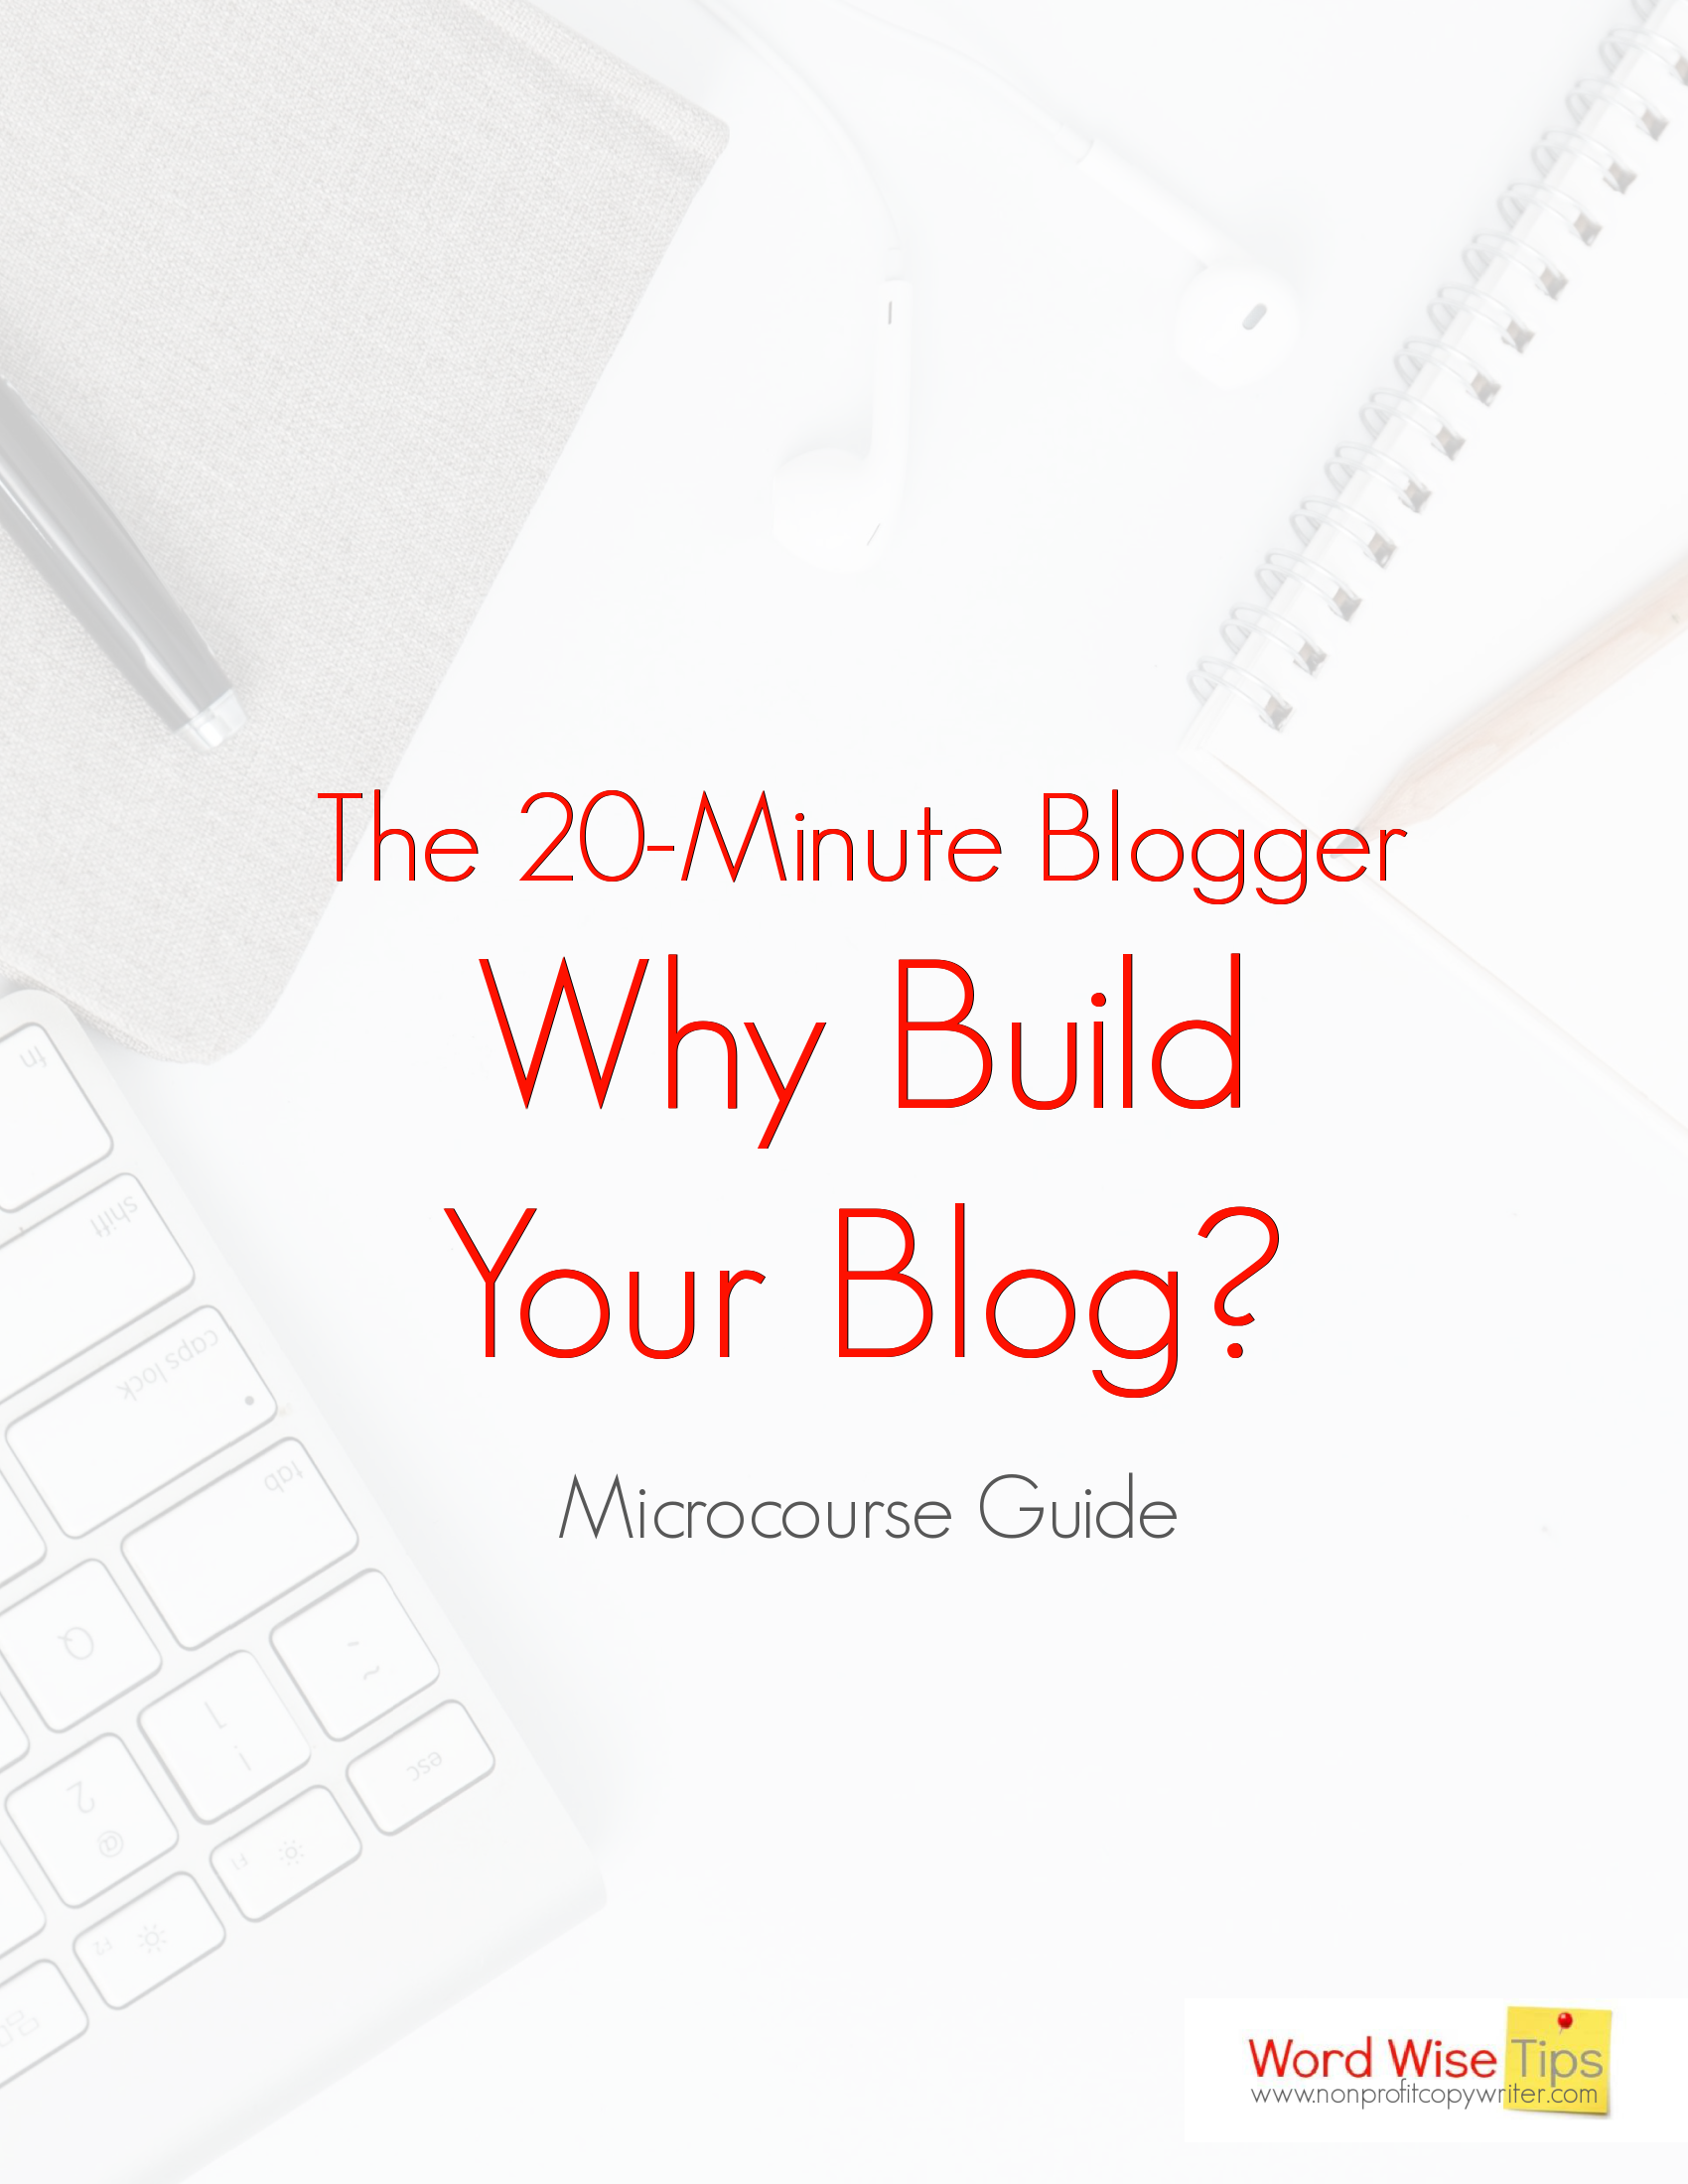 Why Build Your Blog? A free micro-course from Word Wise at Nonprofit Copywriter #onlinecourse #blogging #WritingTips